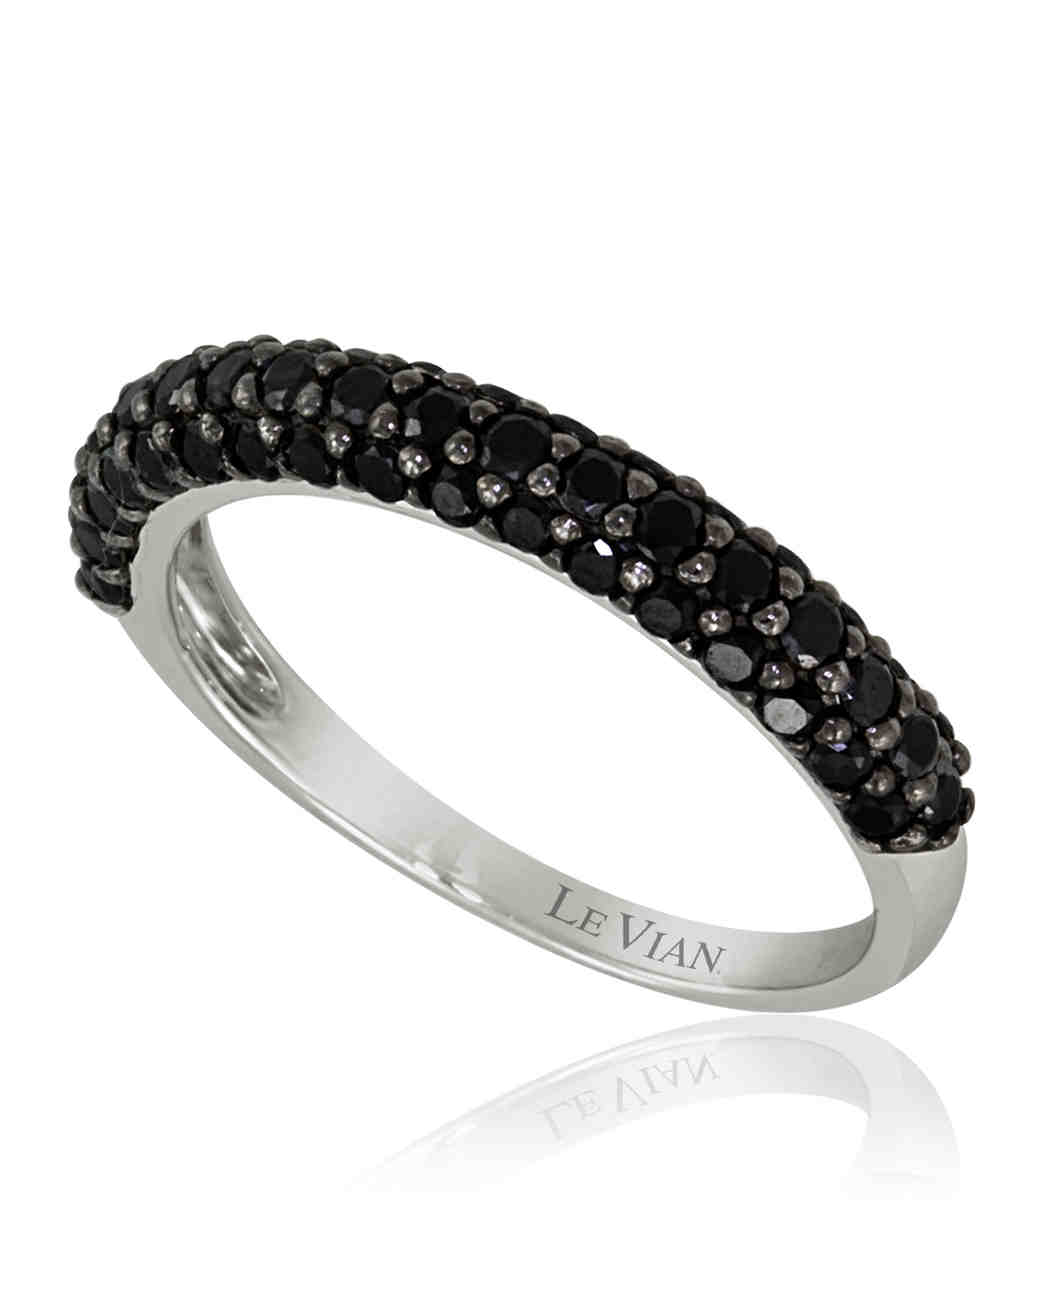 black-diamond-engagement-rings-levian-0814.jpg